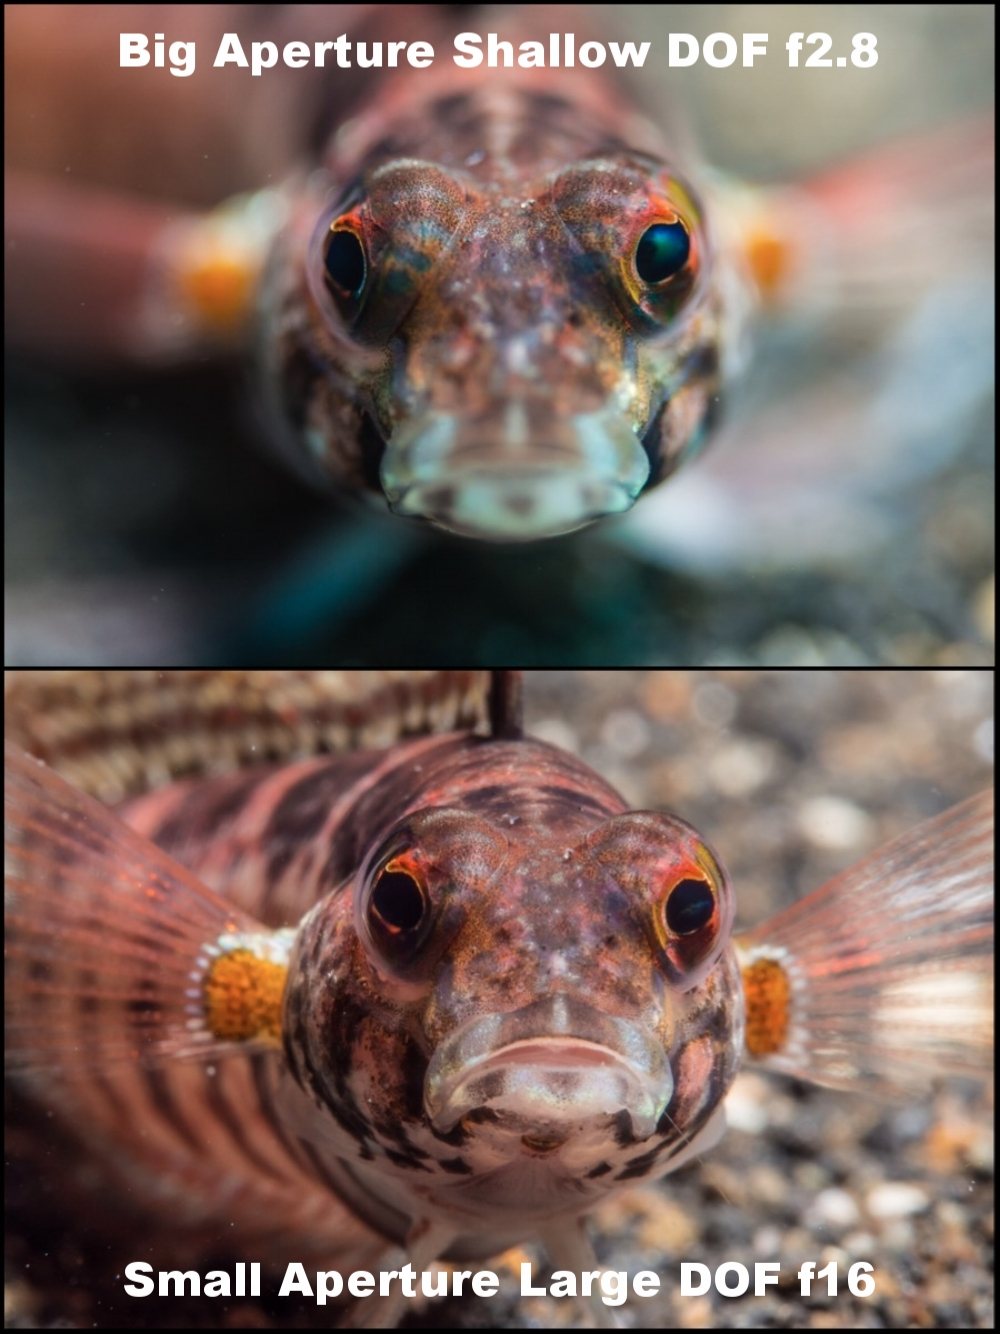 This little fish was set against the background of a muddy Indonesian bottom. So these examples are to show how you can isolate your subject or have more in focus by altering your aperture. Exactly what you set depends on how close you are, and the type of lens you're shooting with. Broadly speaking though, all else being equal, if you choose a smaller aperture (bigger number) you'll have greater Depth of Field, more in focus, than if you'd chosen a wider aperture (smaller number) less in focus. Your choice though, and yet another example where understanding the exposure triangle will empower you.